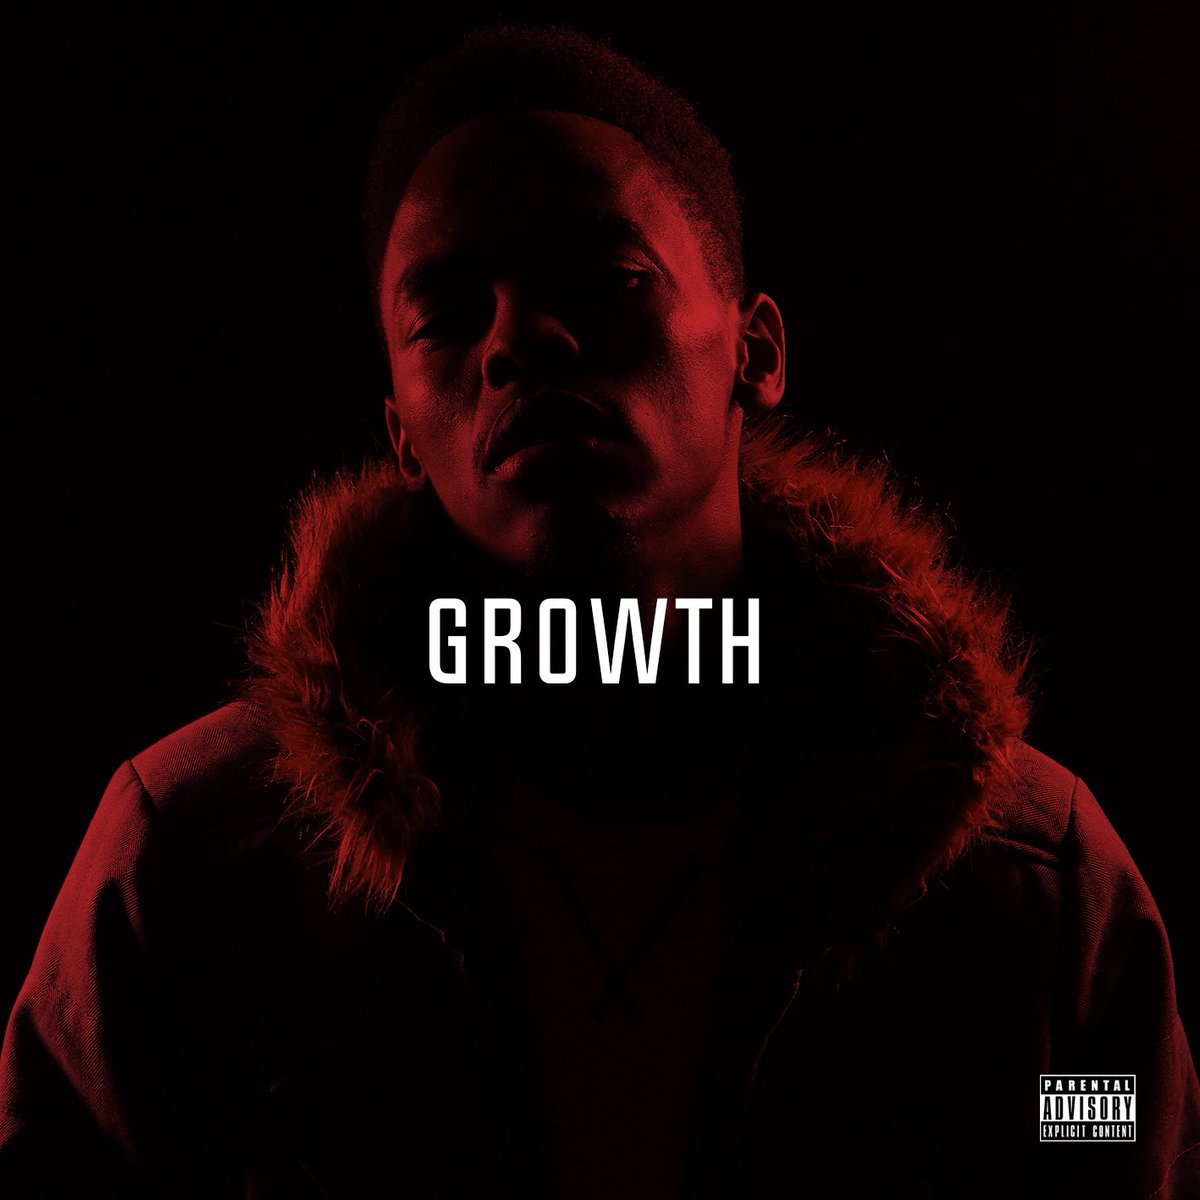 Growth. Available Now!  Soundcloud:  https:// goo.gl/ZqqQF9  &nbsp;   Audiomack:  https:// goo.gl/RhYFrB  &nbsp;    Mixed and Mastered by @lifeofsallie  #Growth <br>http://pic.twitter.com/nRaQtOJ8gr